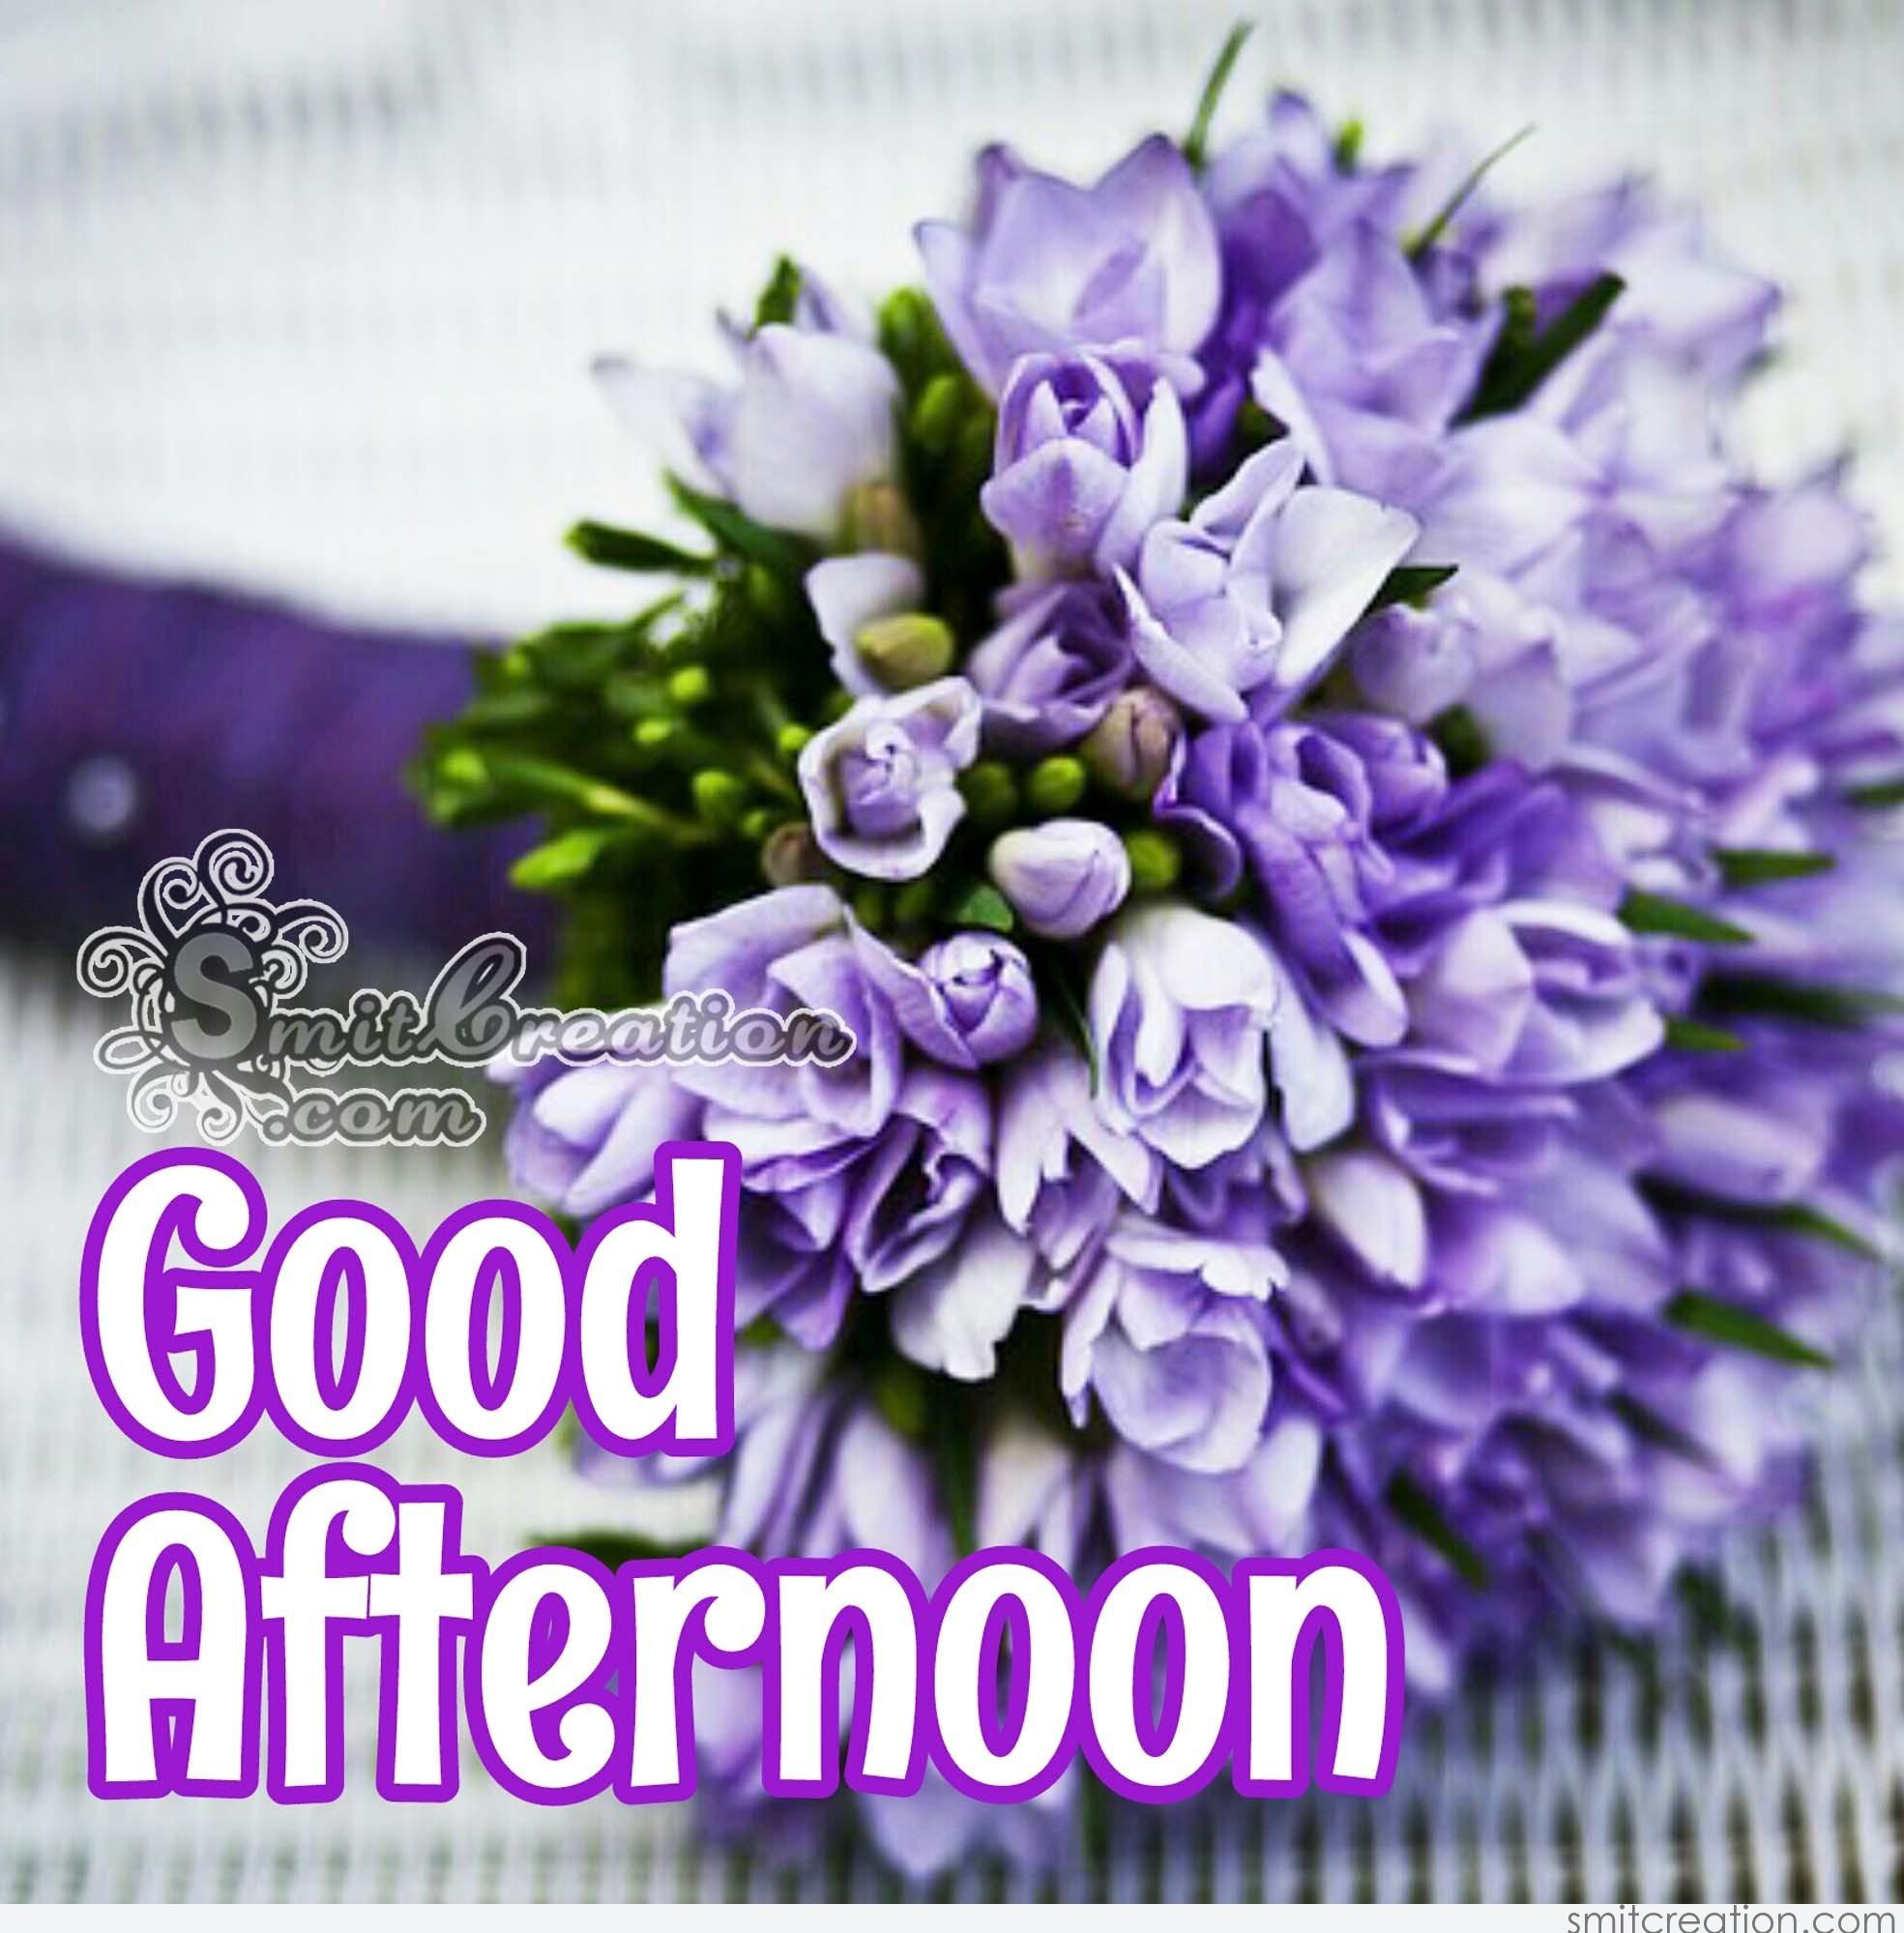 Good Afternoon Flower Pictures and Graphics - SmitCreation.com Good Afternoon Images With Roses